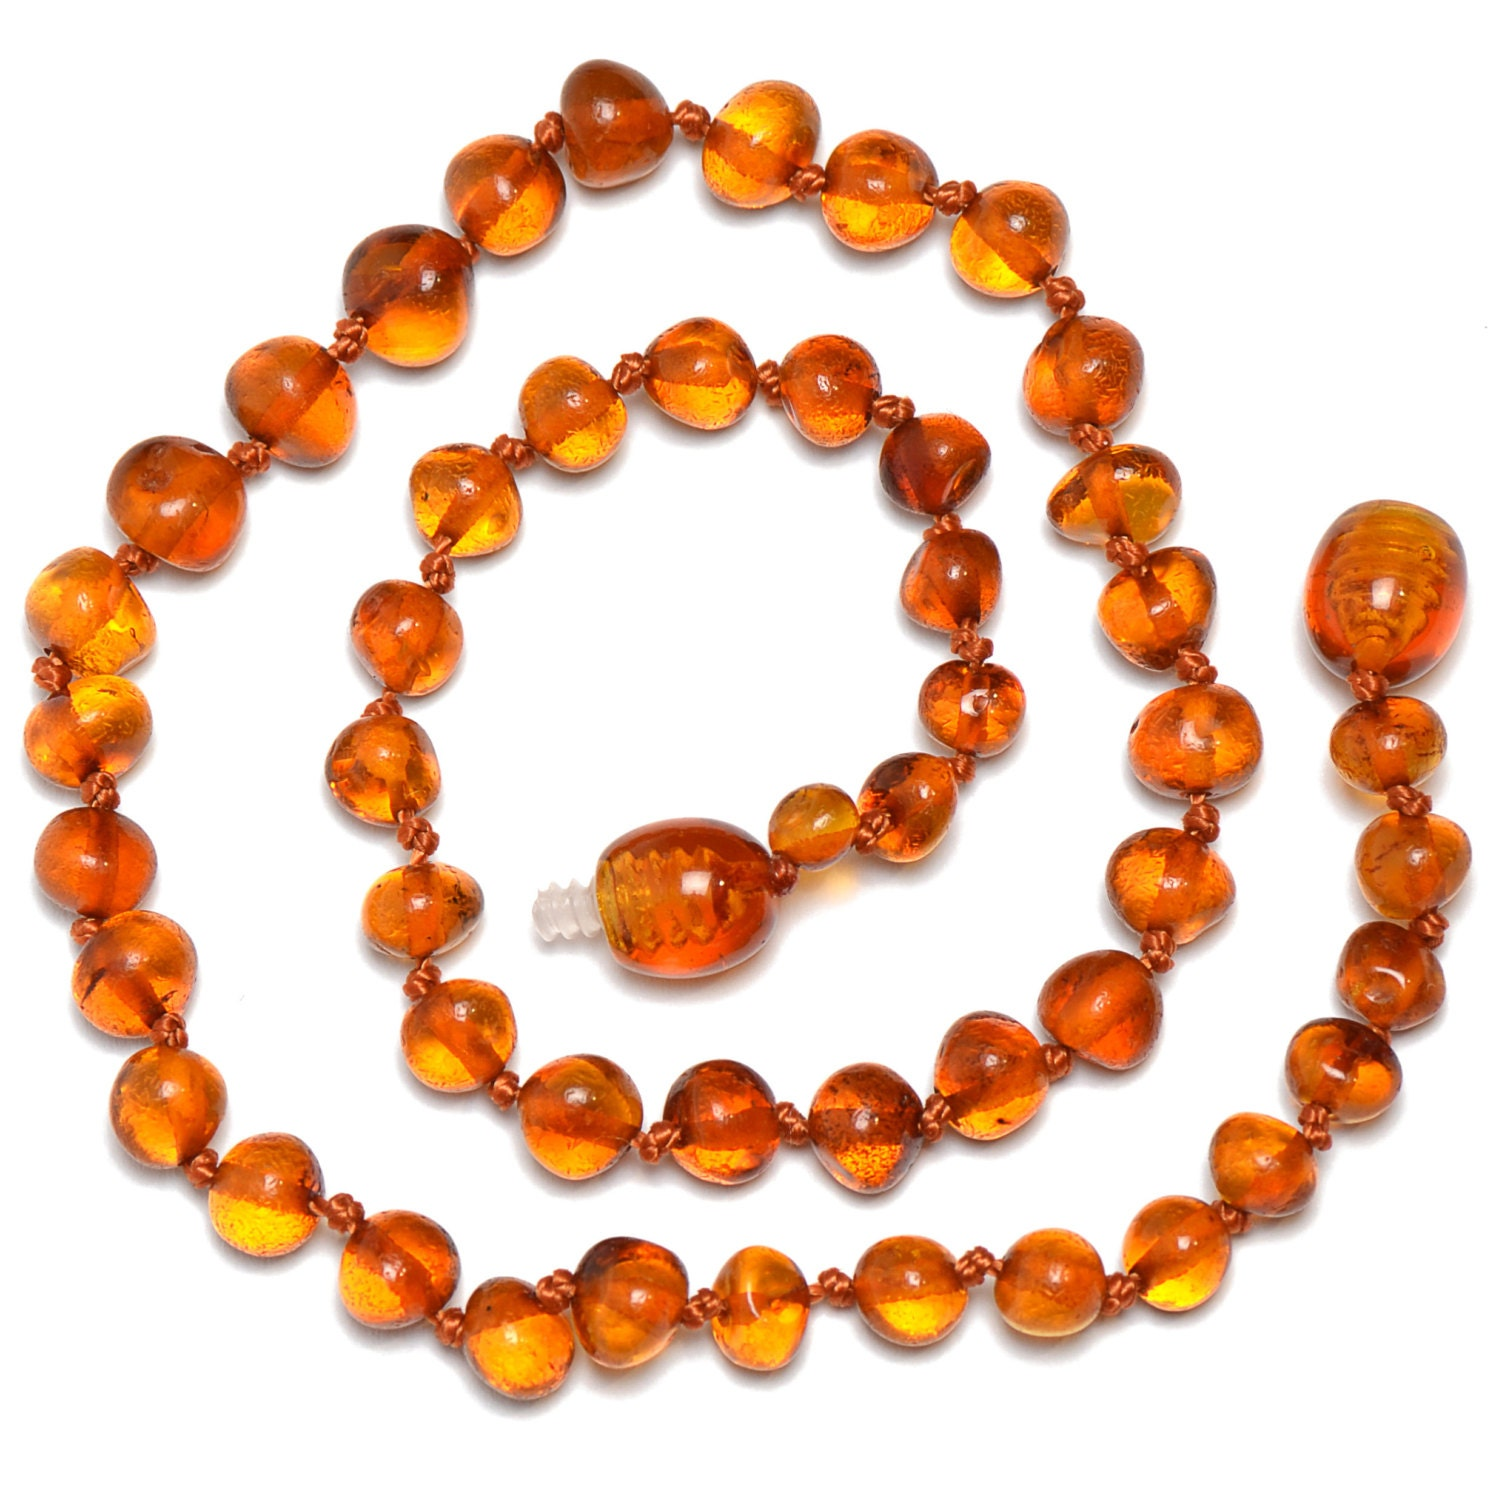 Hand Made Baltic Amber Teething Necklace For Babies Safety